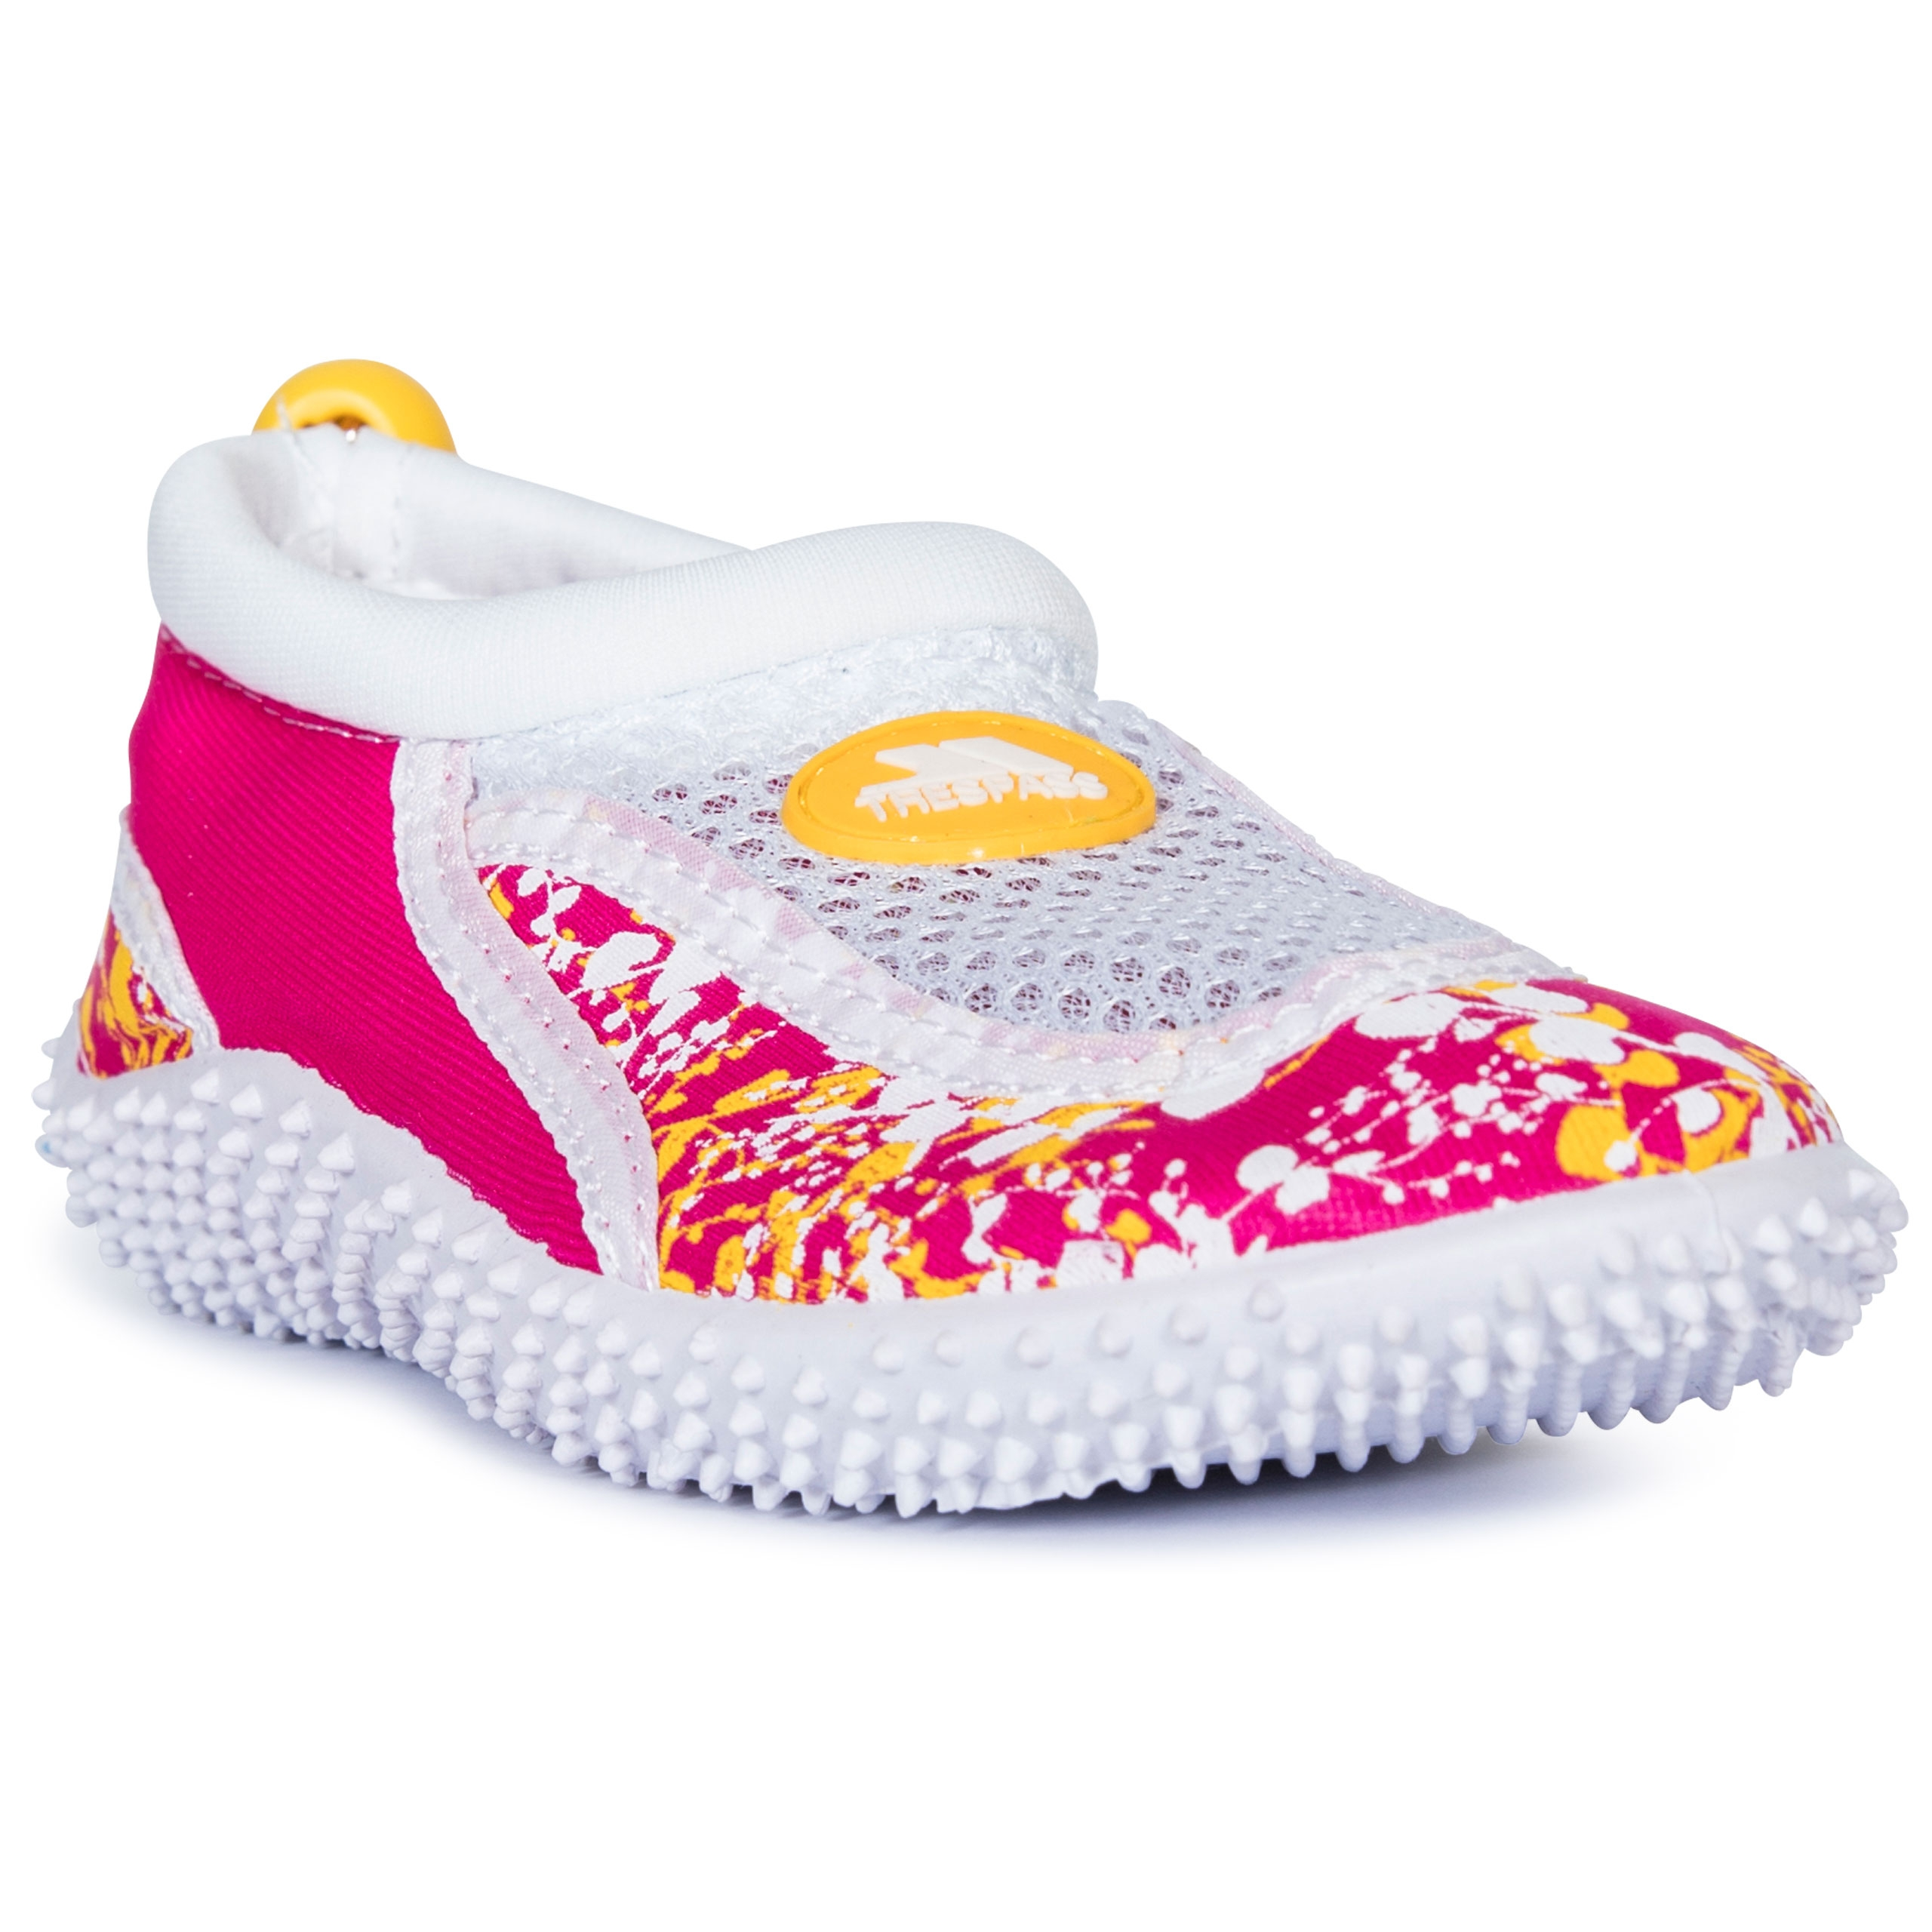 Squidette Kids Aqua Shoes